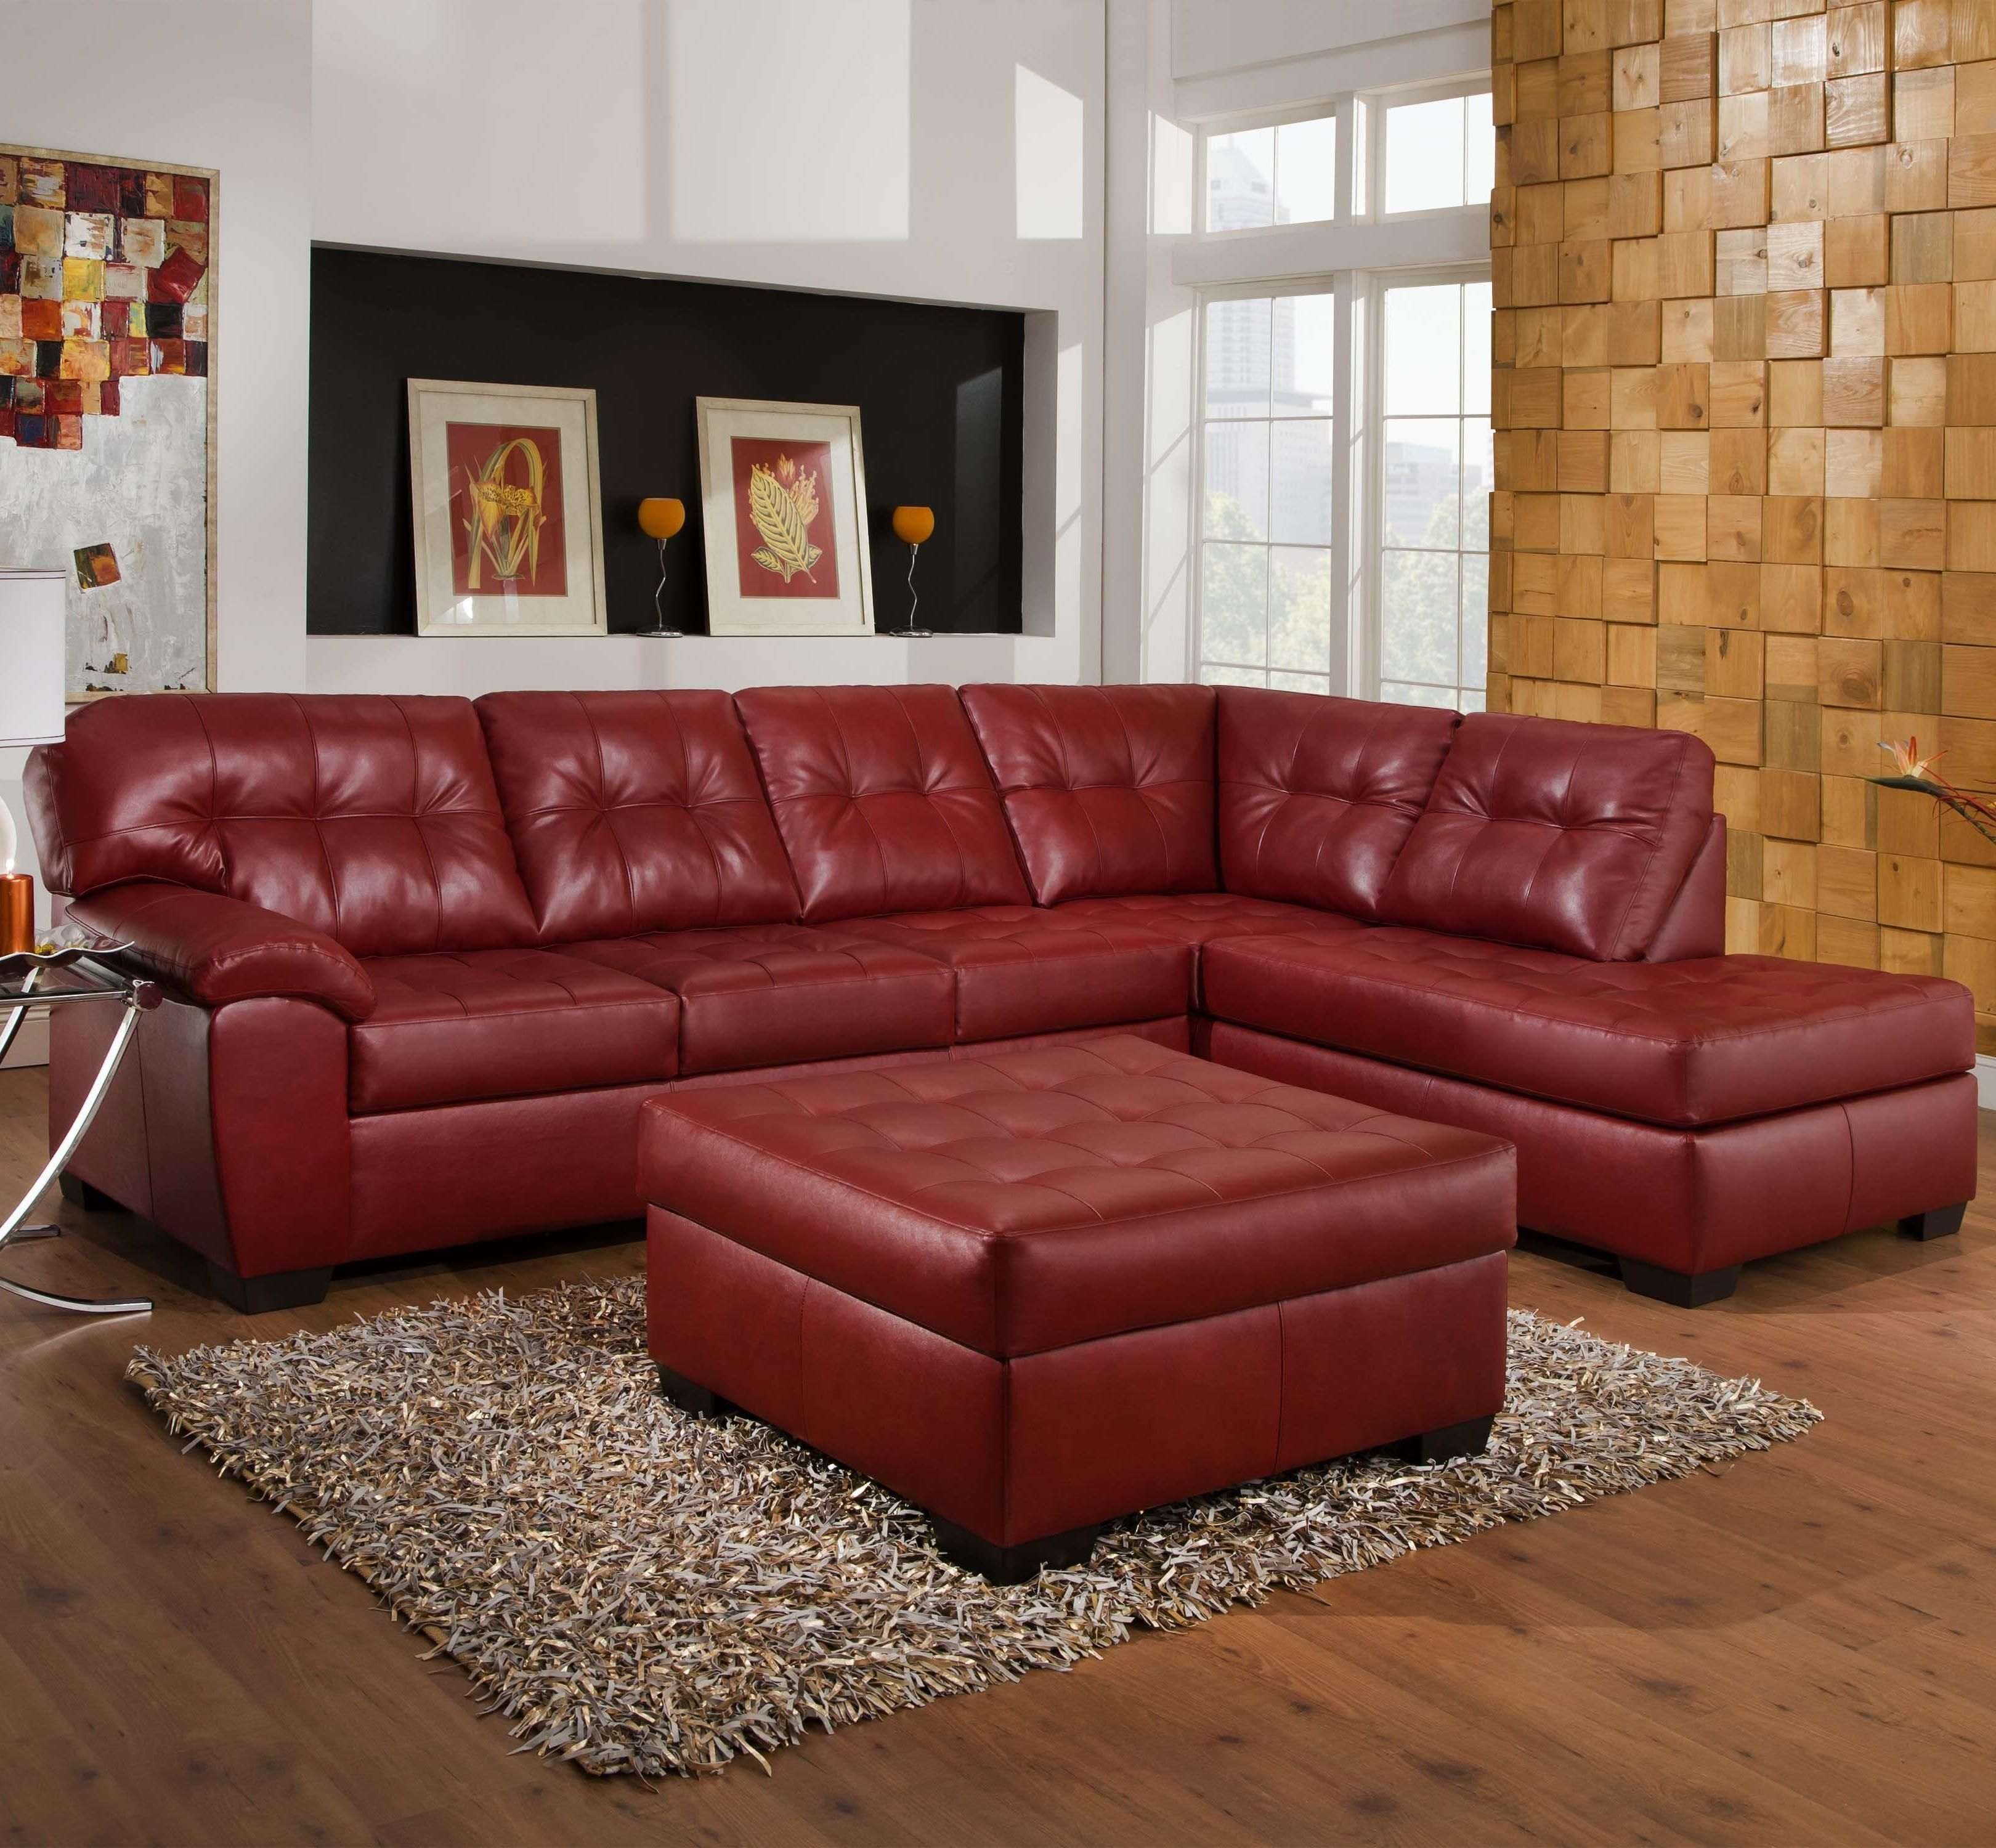 9569 2 Piece Sectional With Tufted Seats & Backsimmons intended for Simmons Chaise Sofas